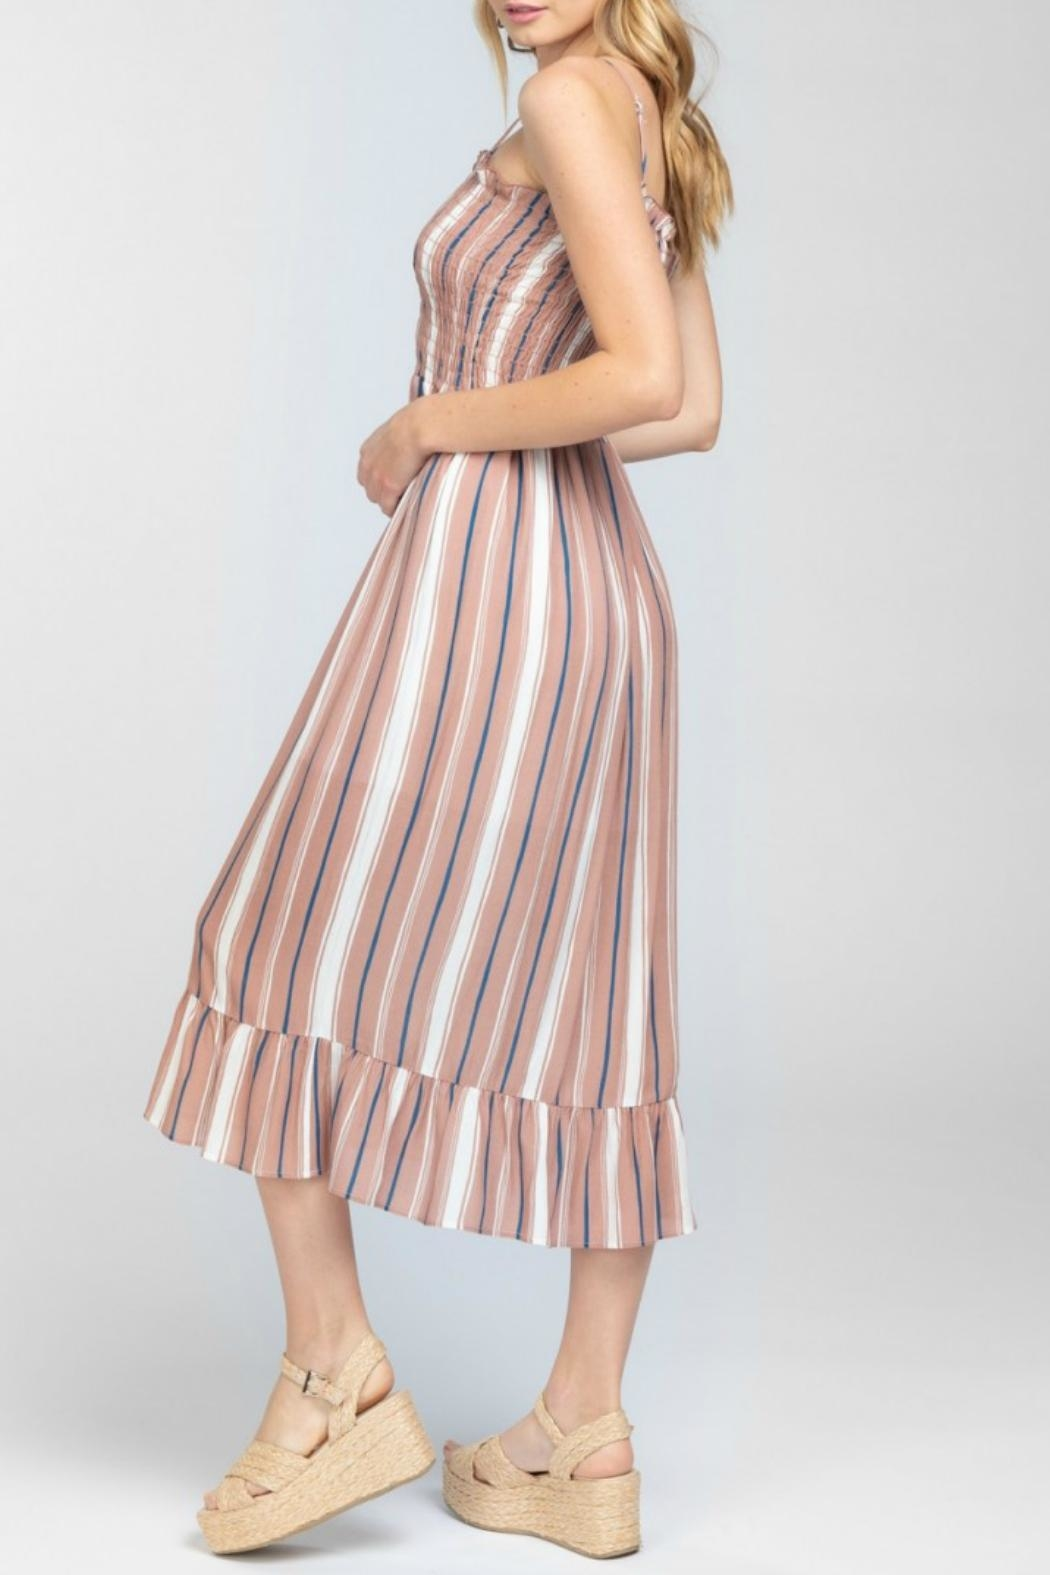 ALB Anchorage Striped Smocked Midi-Dress - Side Cropped Image